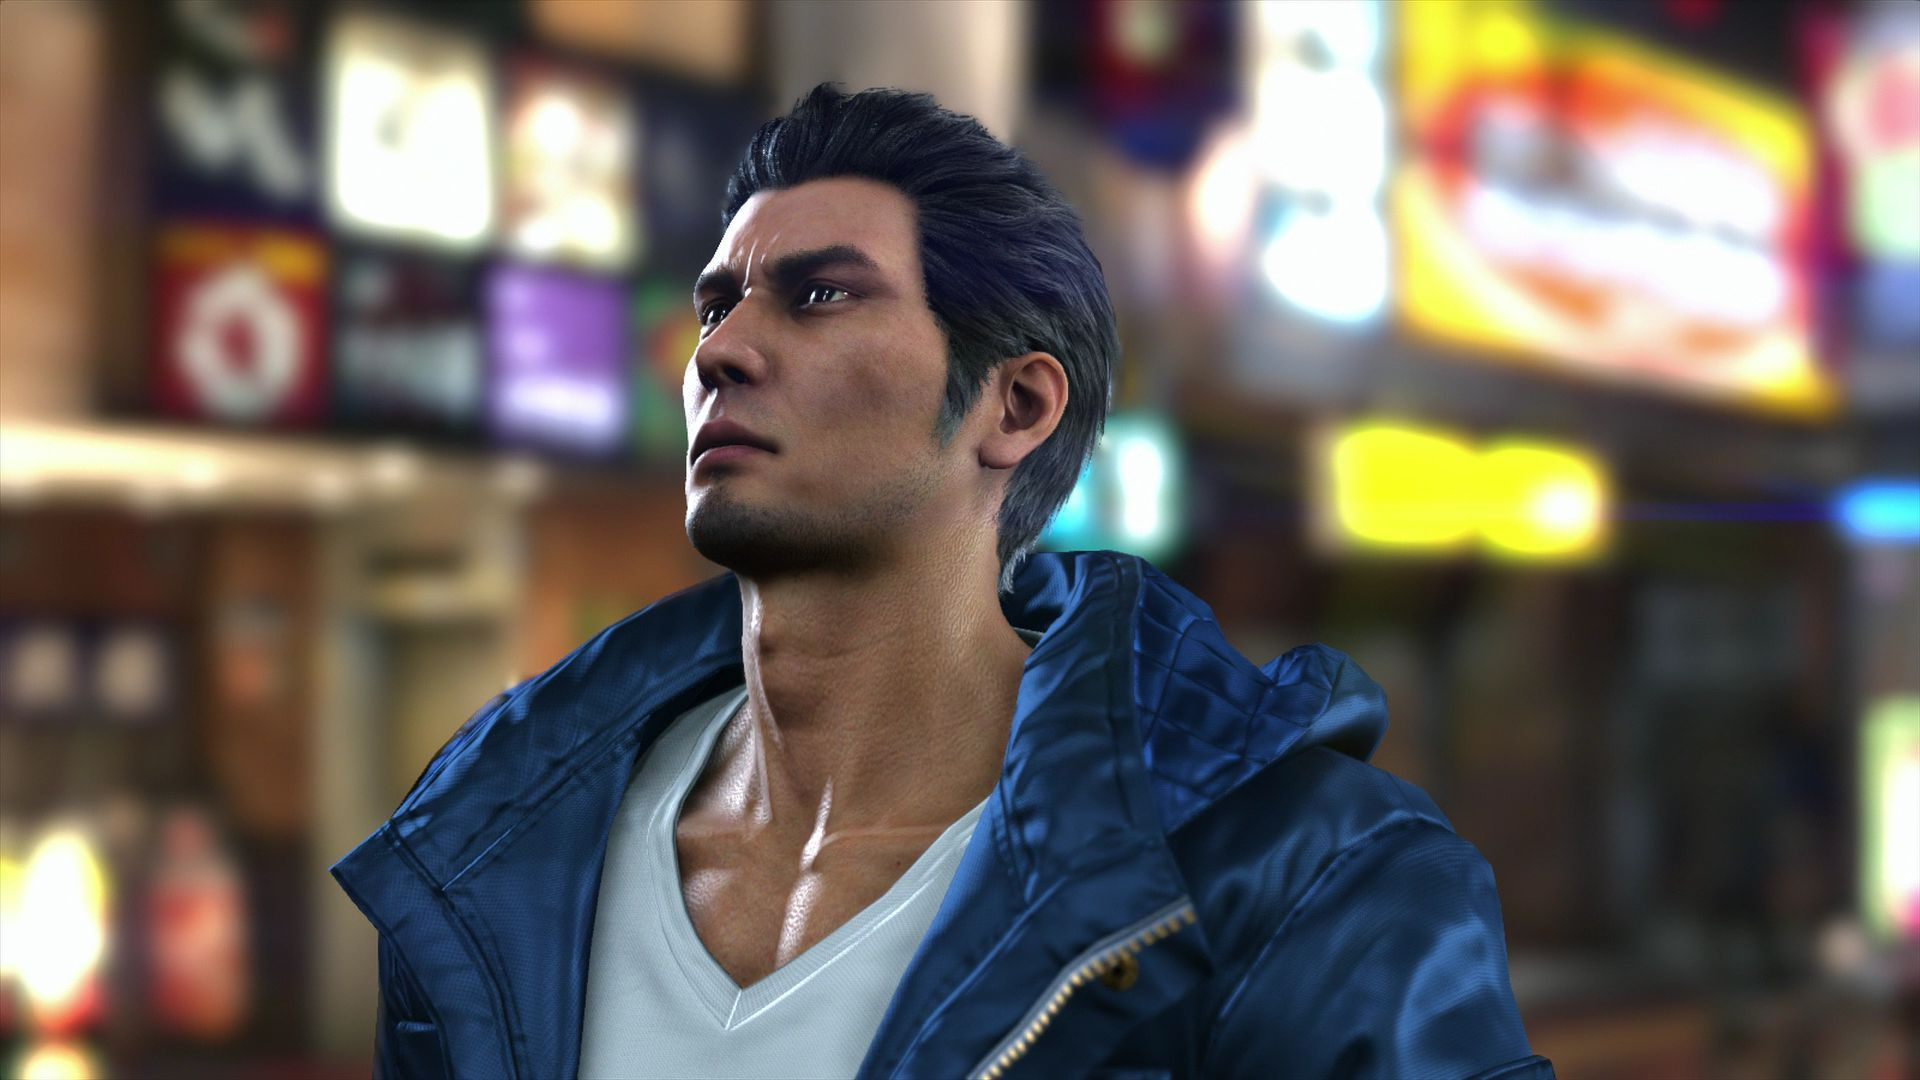 Yakuza 3 PS4 Remaster - News, Trailers, DLC and More    | Chaos Hour